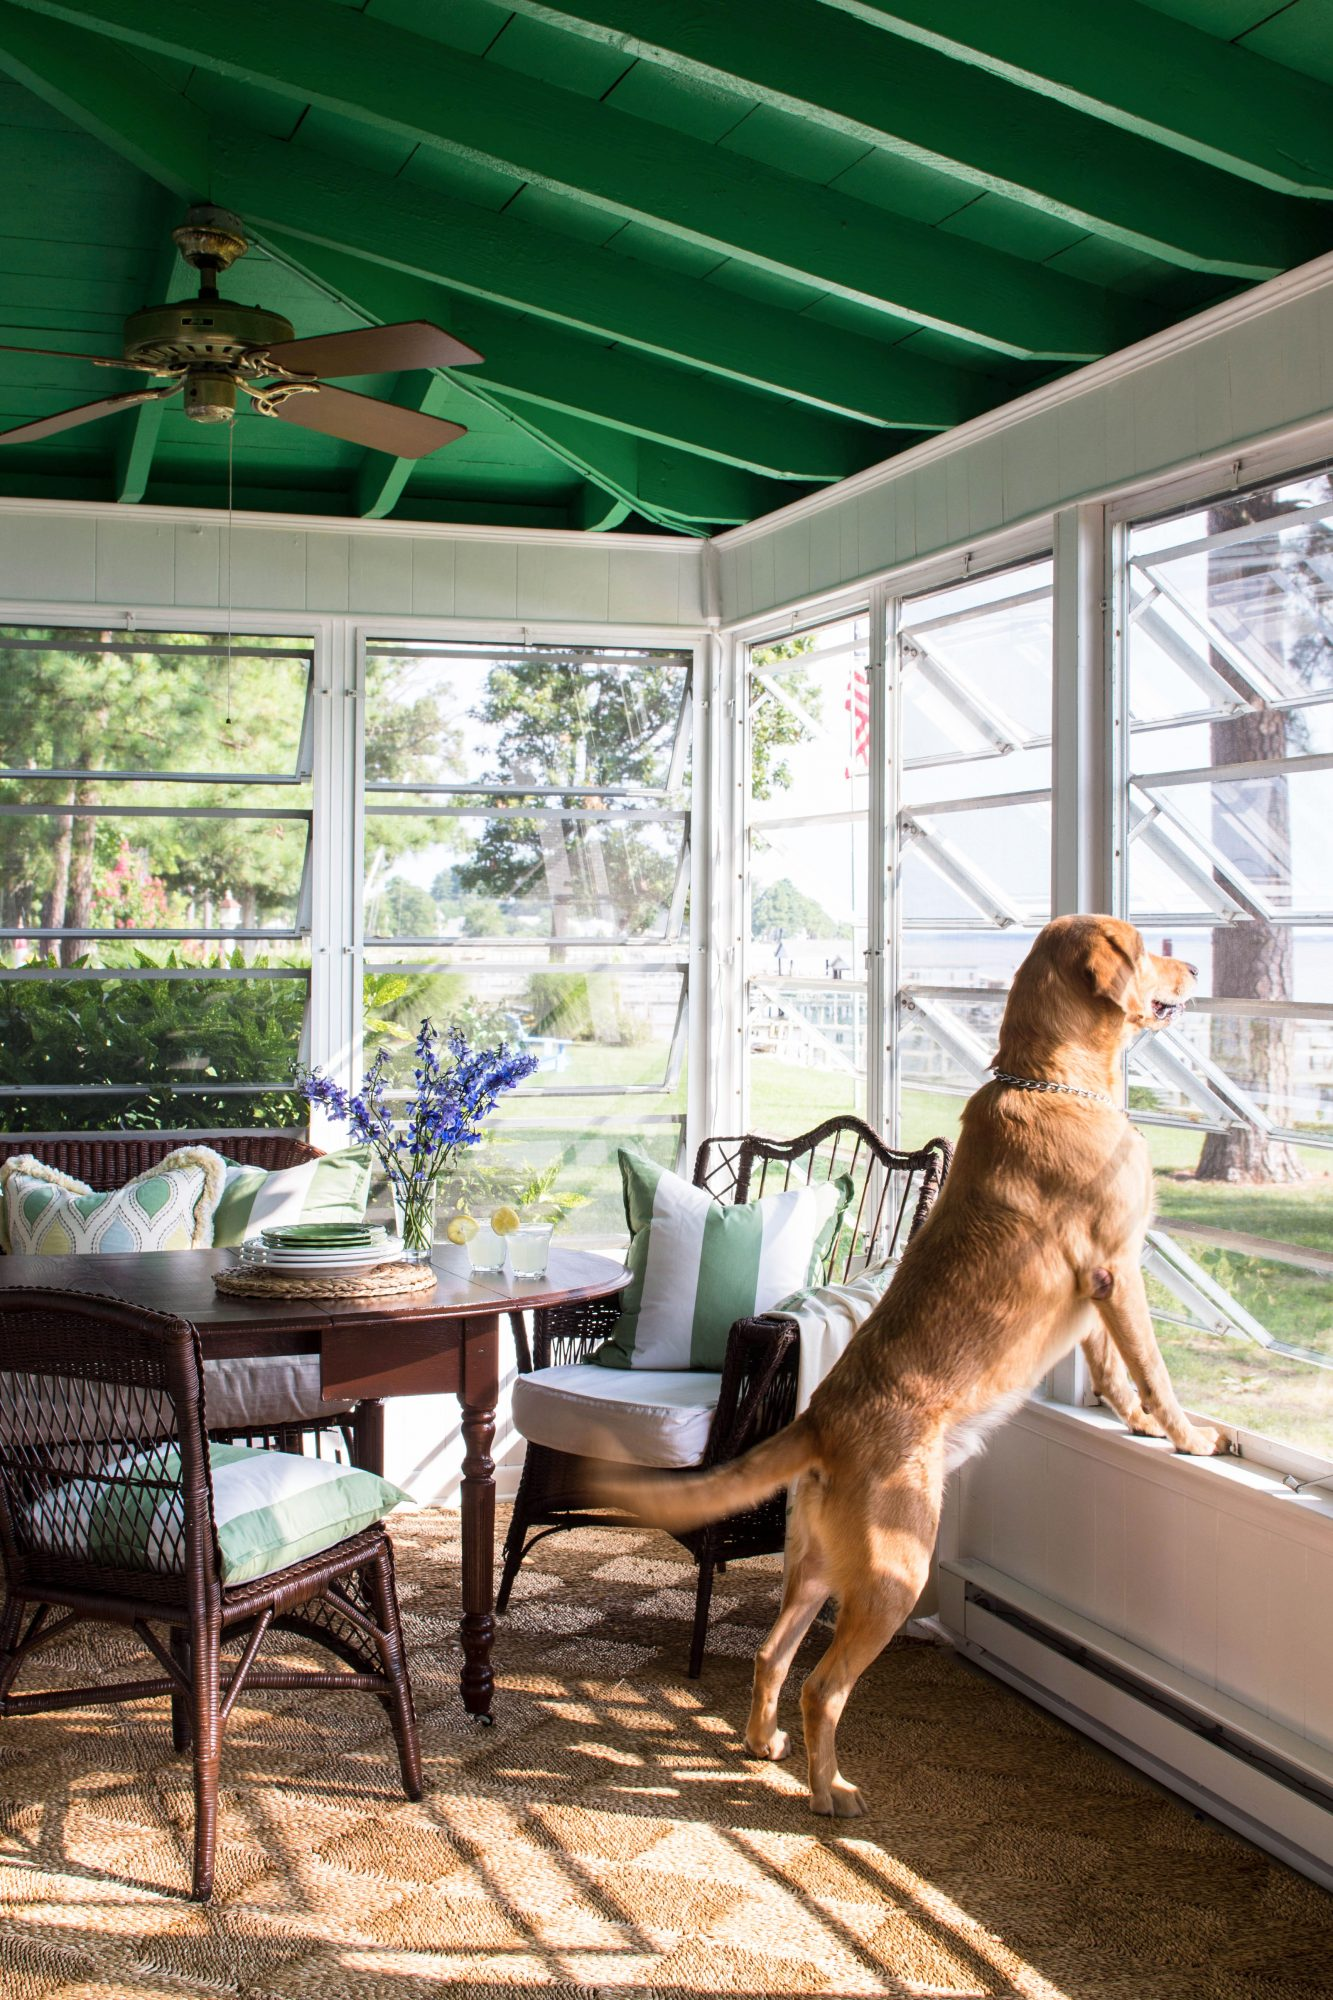 Sunroom with green ceiling and hand-crank jalousie windows with golden retriever looking out